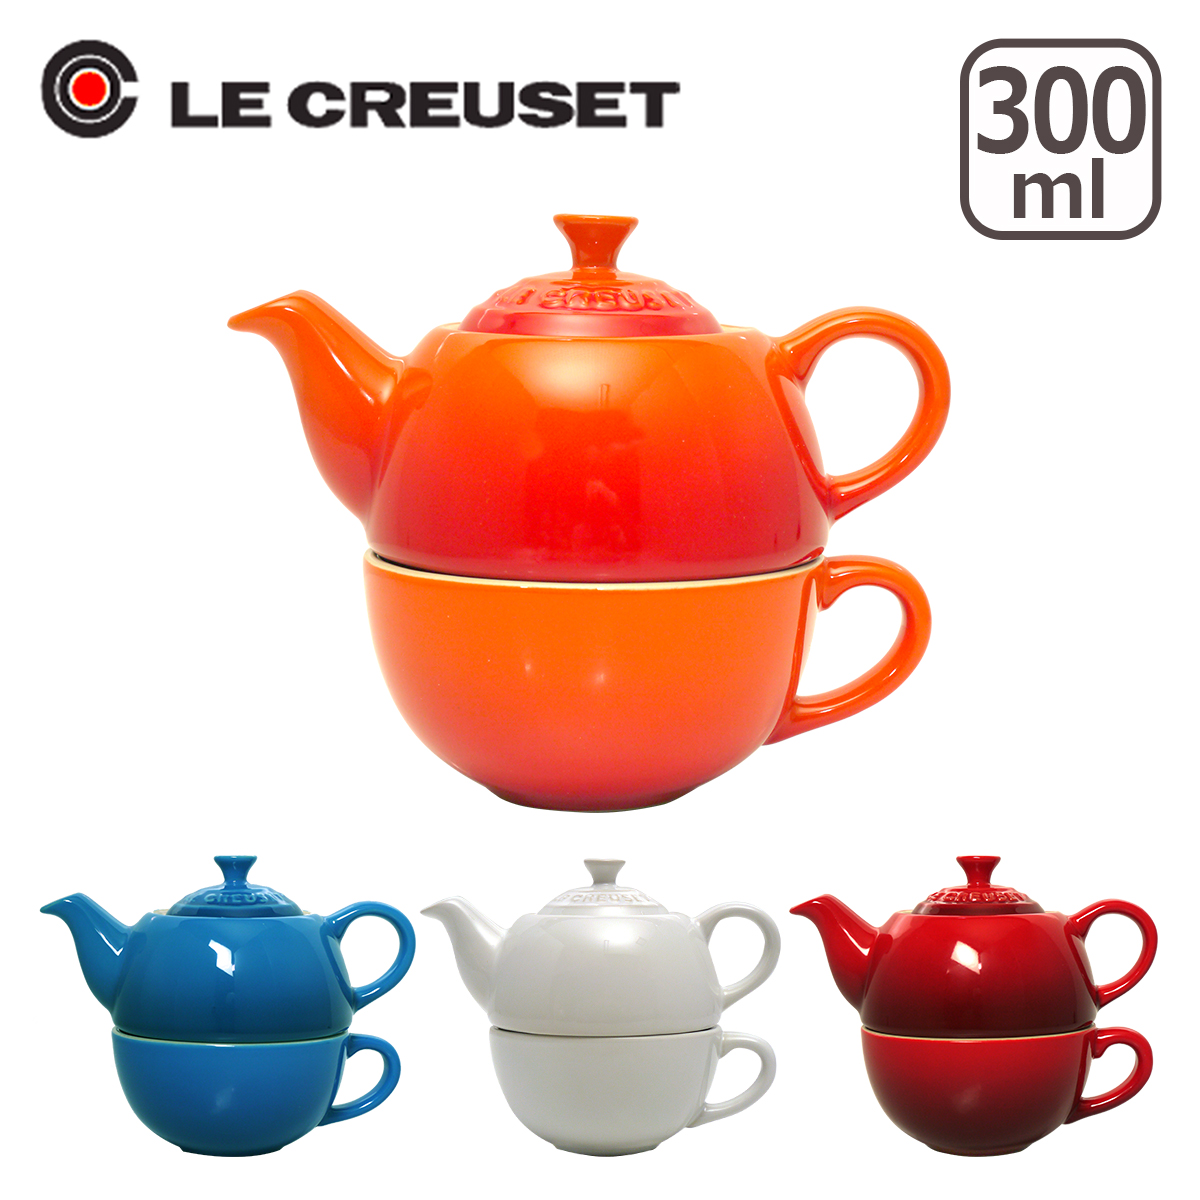 Le Creuset Teapot Cup Set Tir For One Orange Red And Other Colors